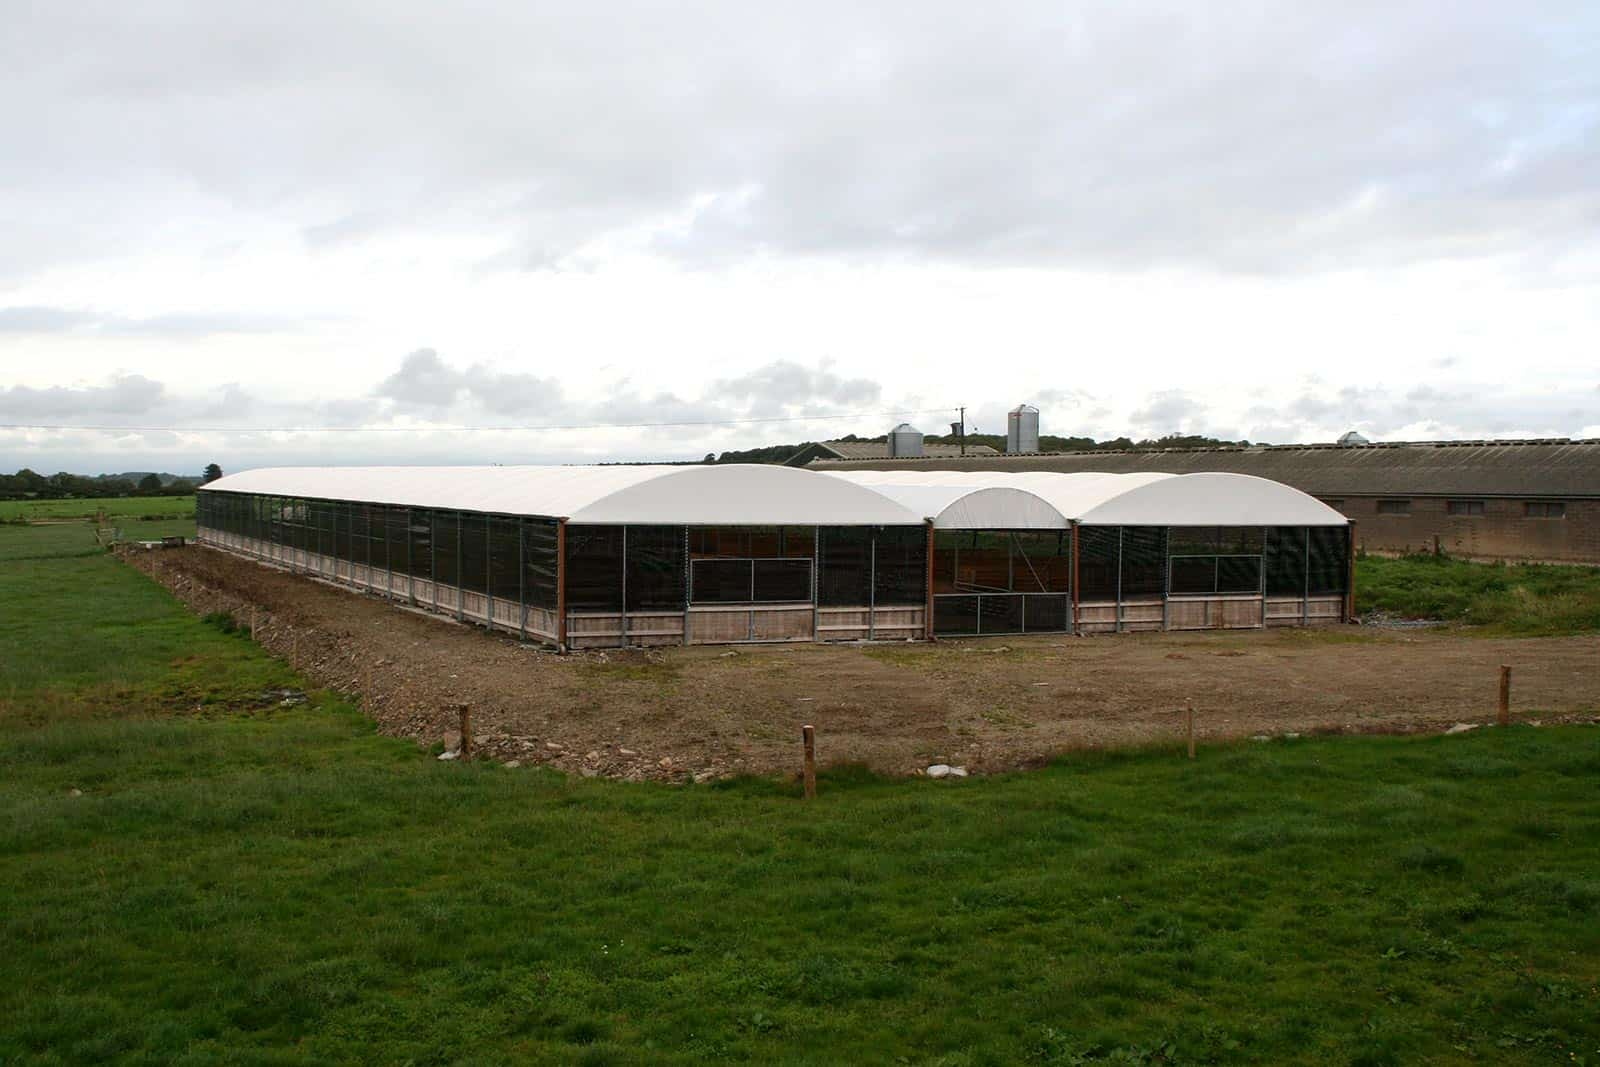 Commercial polytunnel structure by McGregor Polytunnels